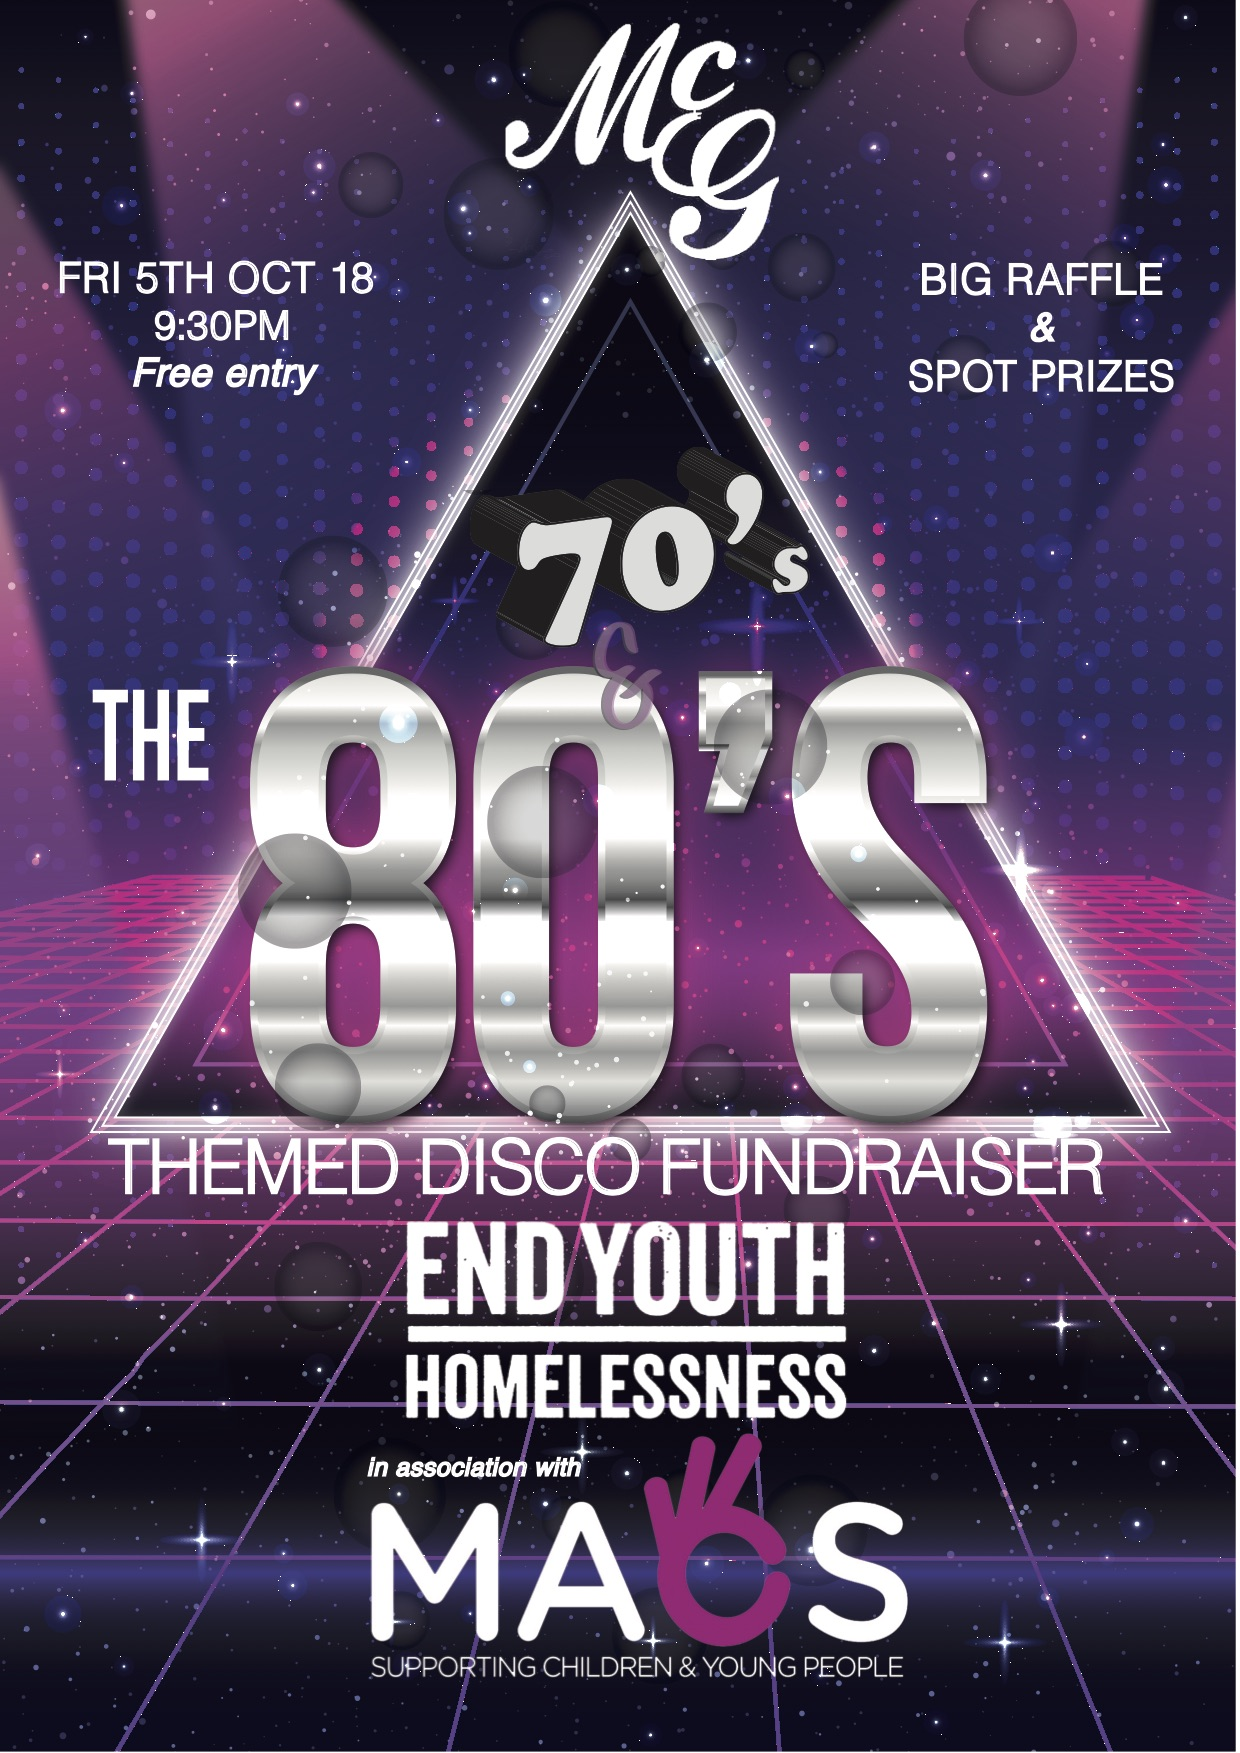 70's & 80's Disco Fundraiser for the Belfast Sleep Out - MACS